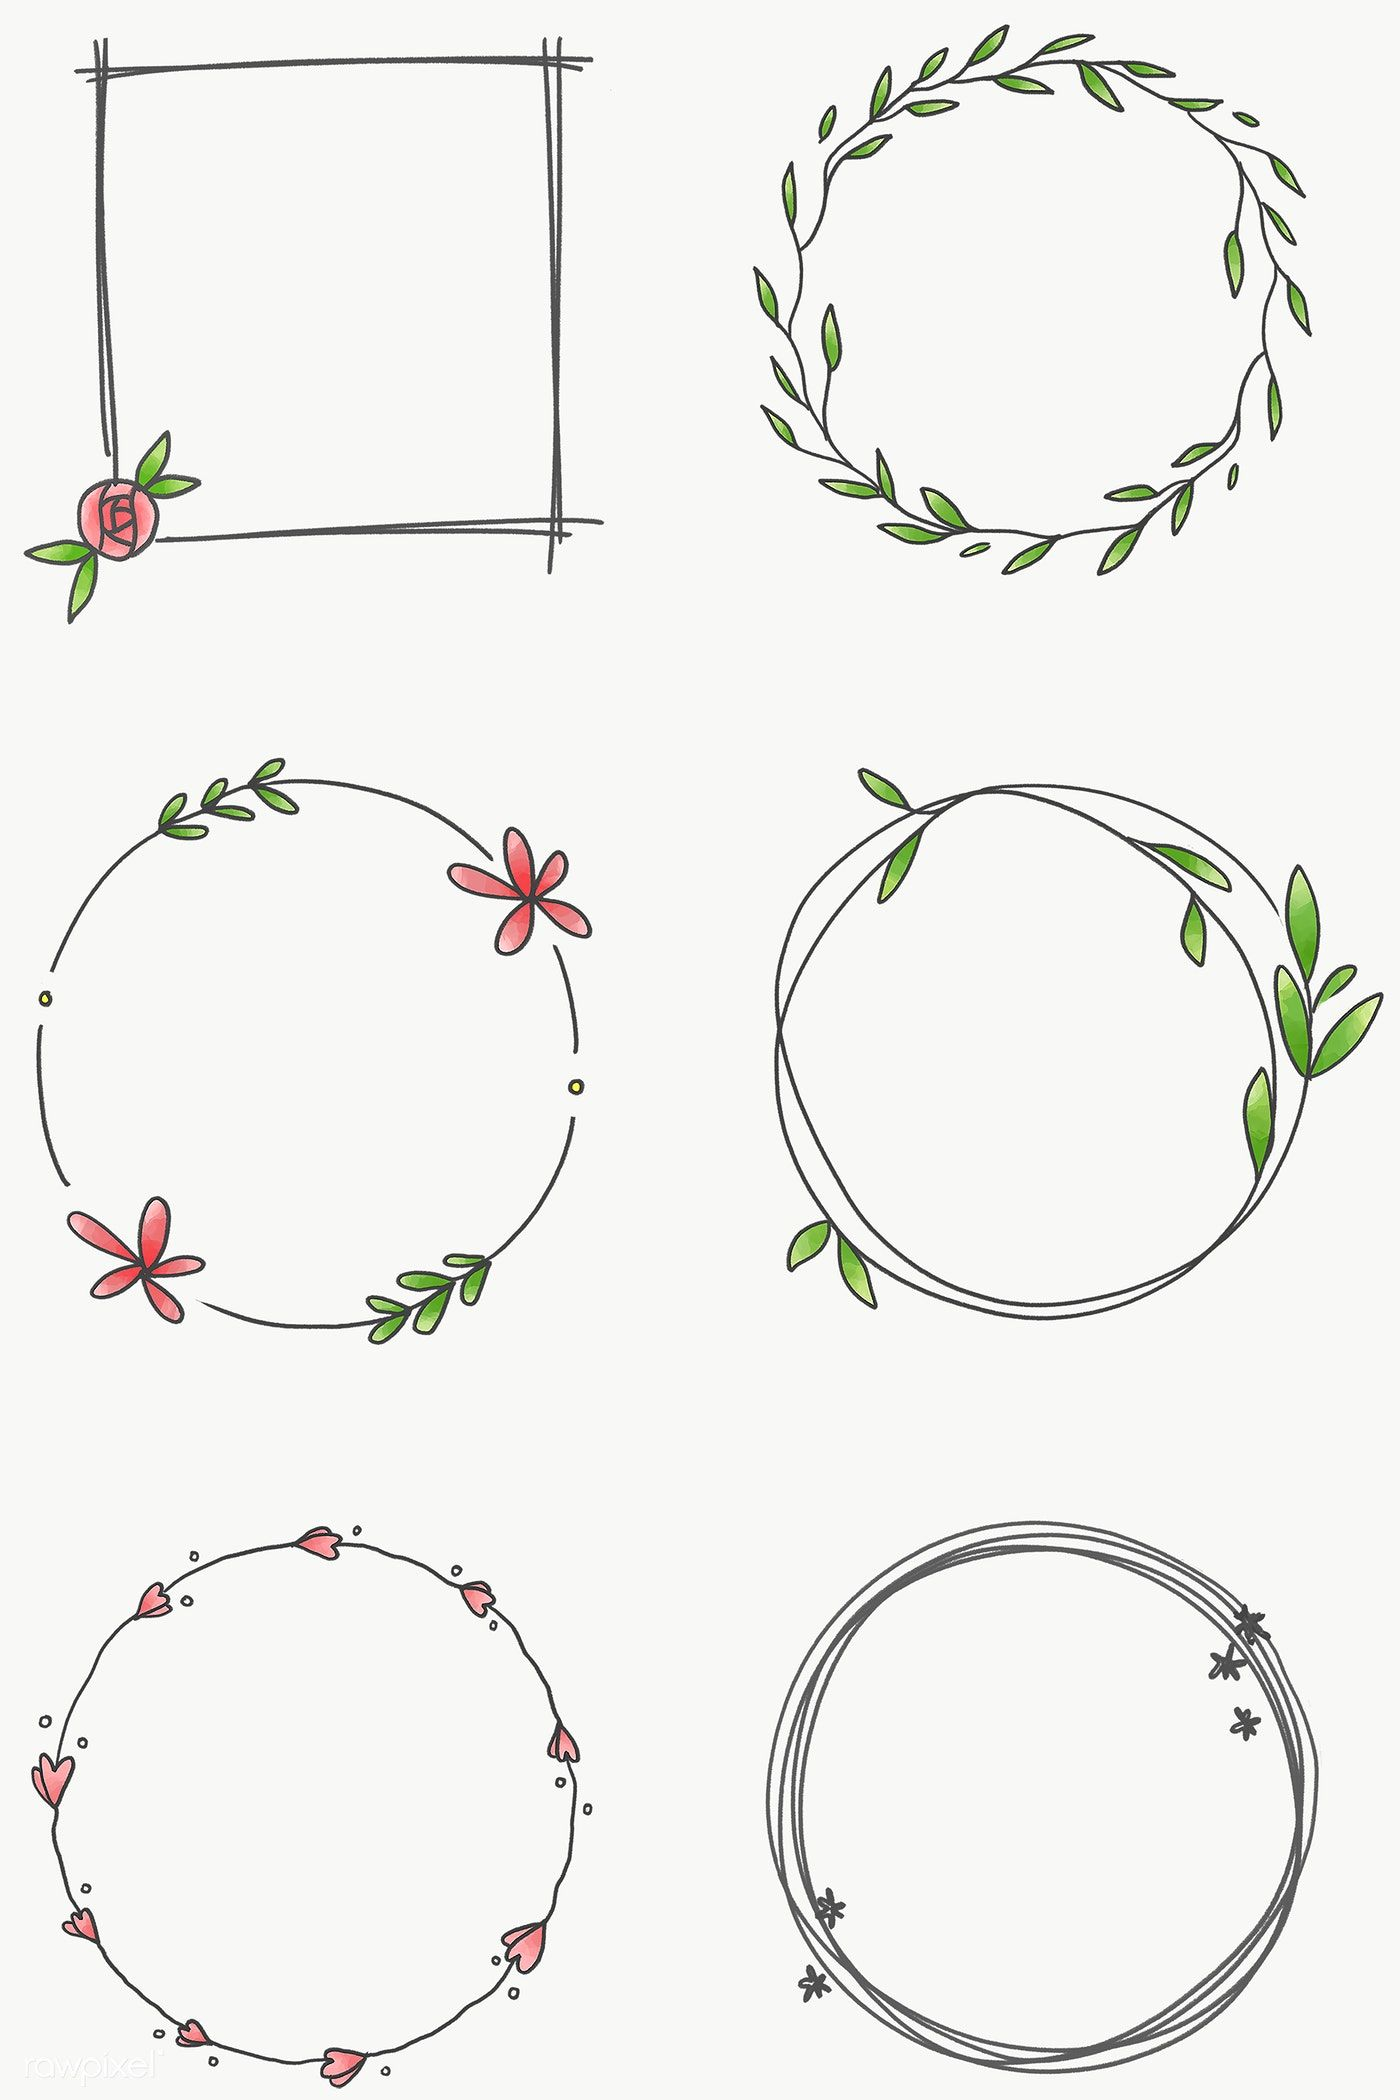 Download Premium Png Of Floral Frame Set Transparent Png 2100612 In 2020 Bullet Journal Writing Bullet Journal Ideas Pages Bullet Journal Banner